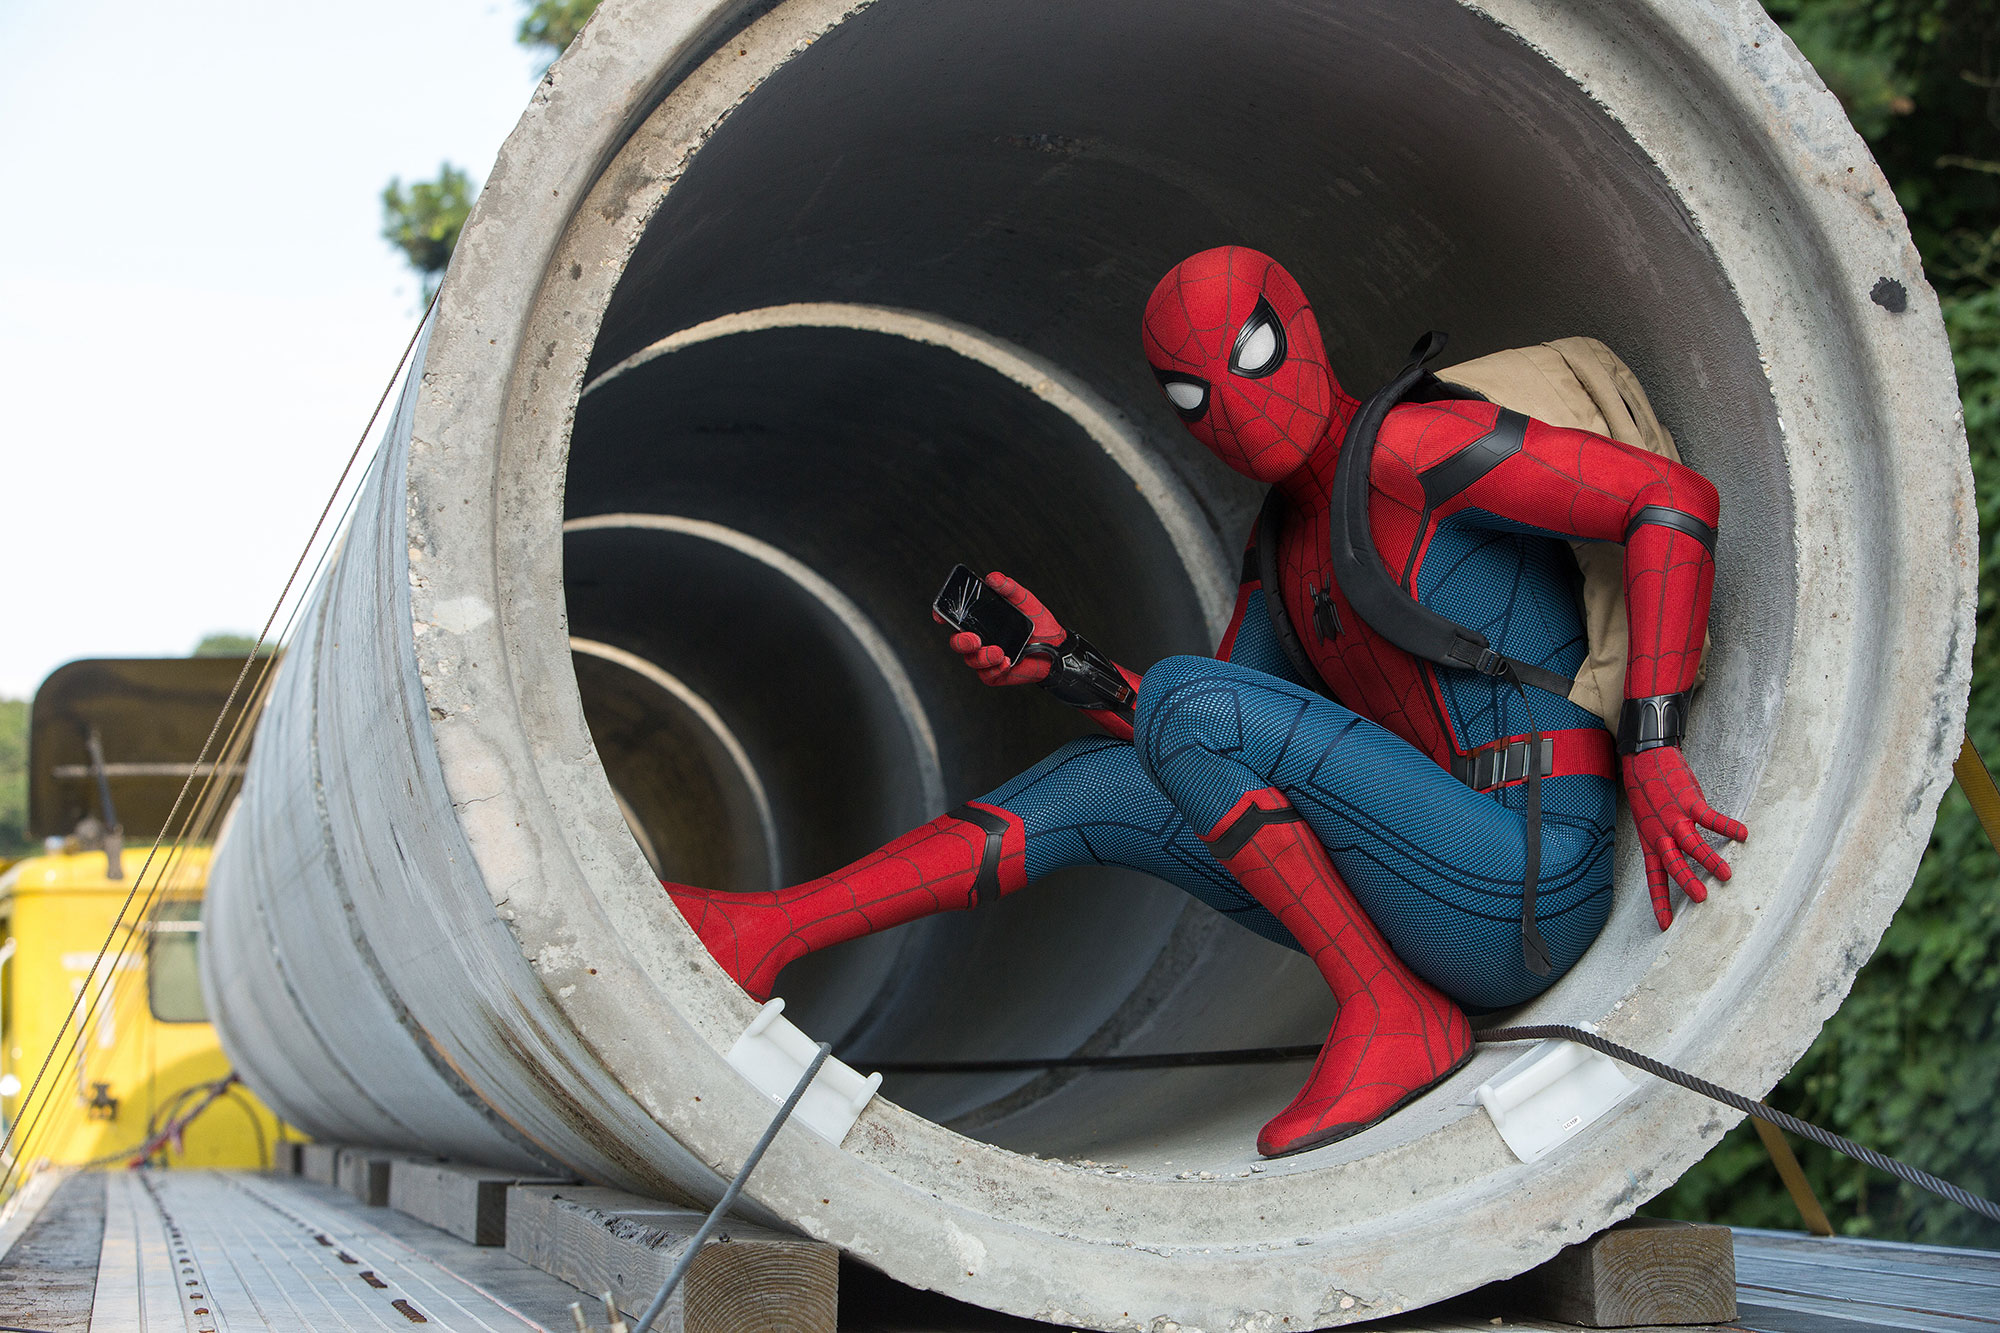 The title is a pun – a review of Spiderman: Homecoming